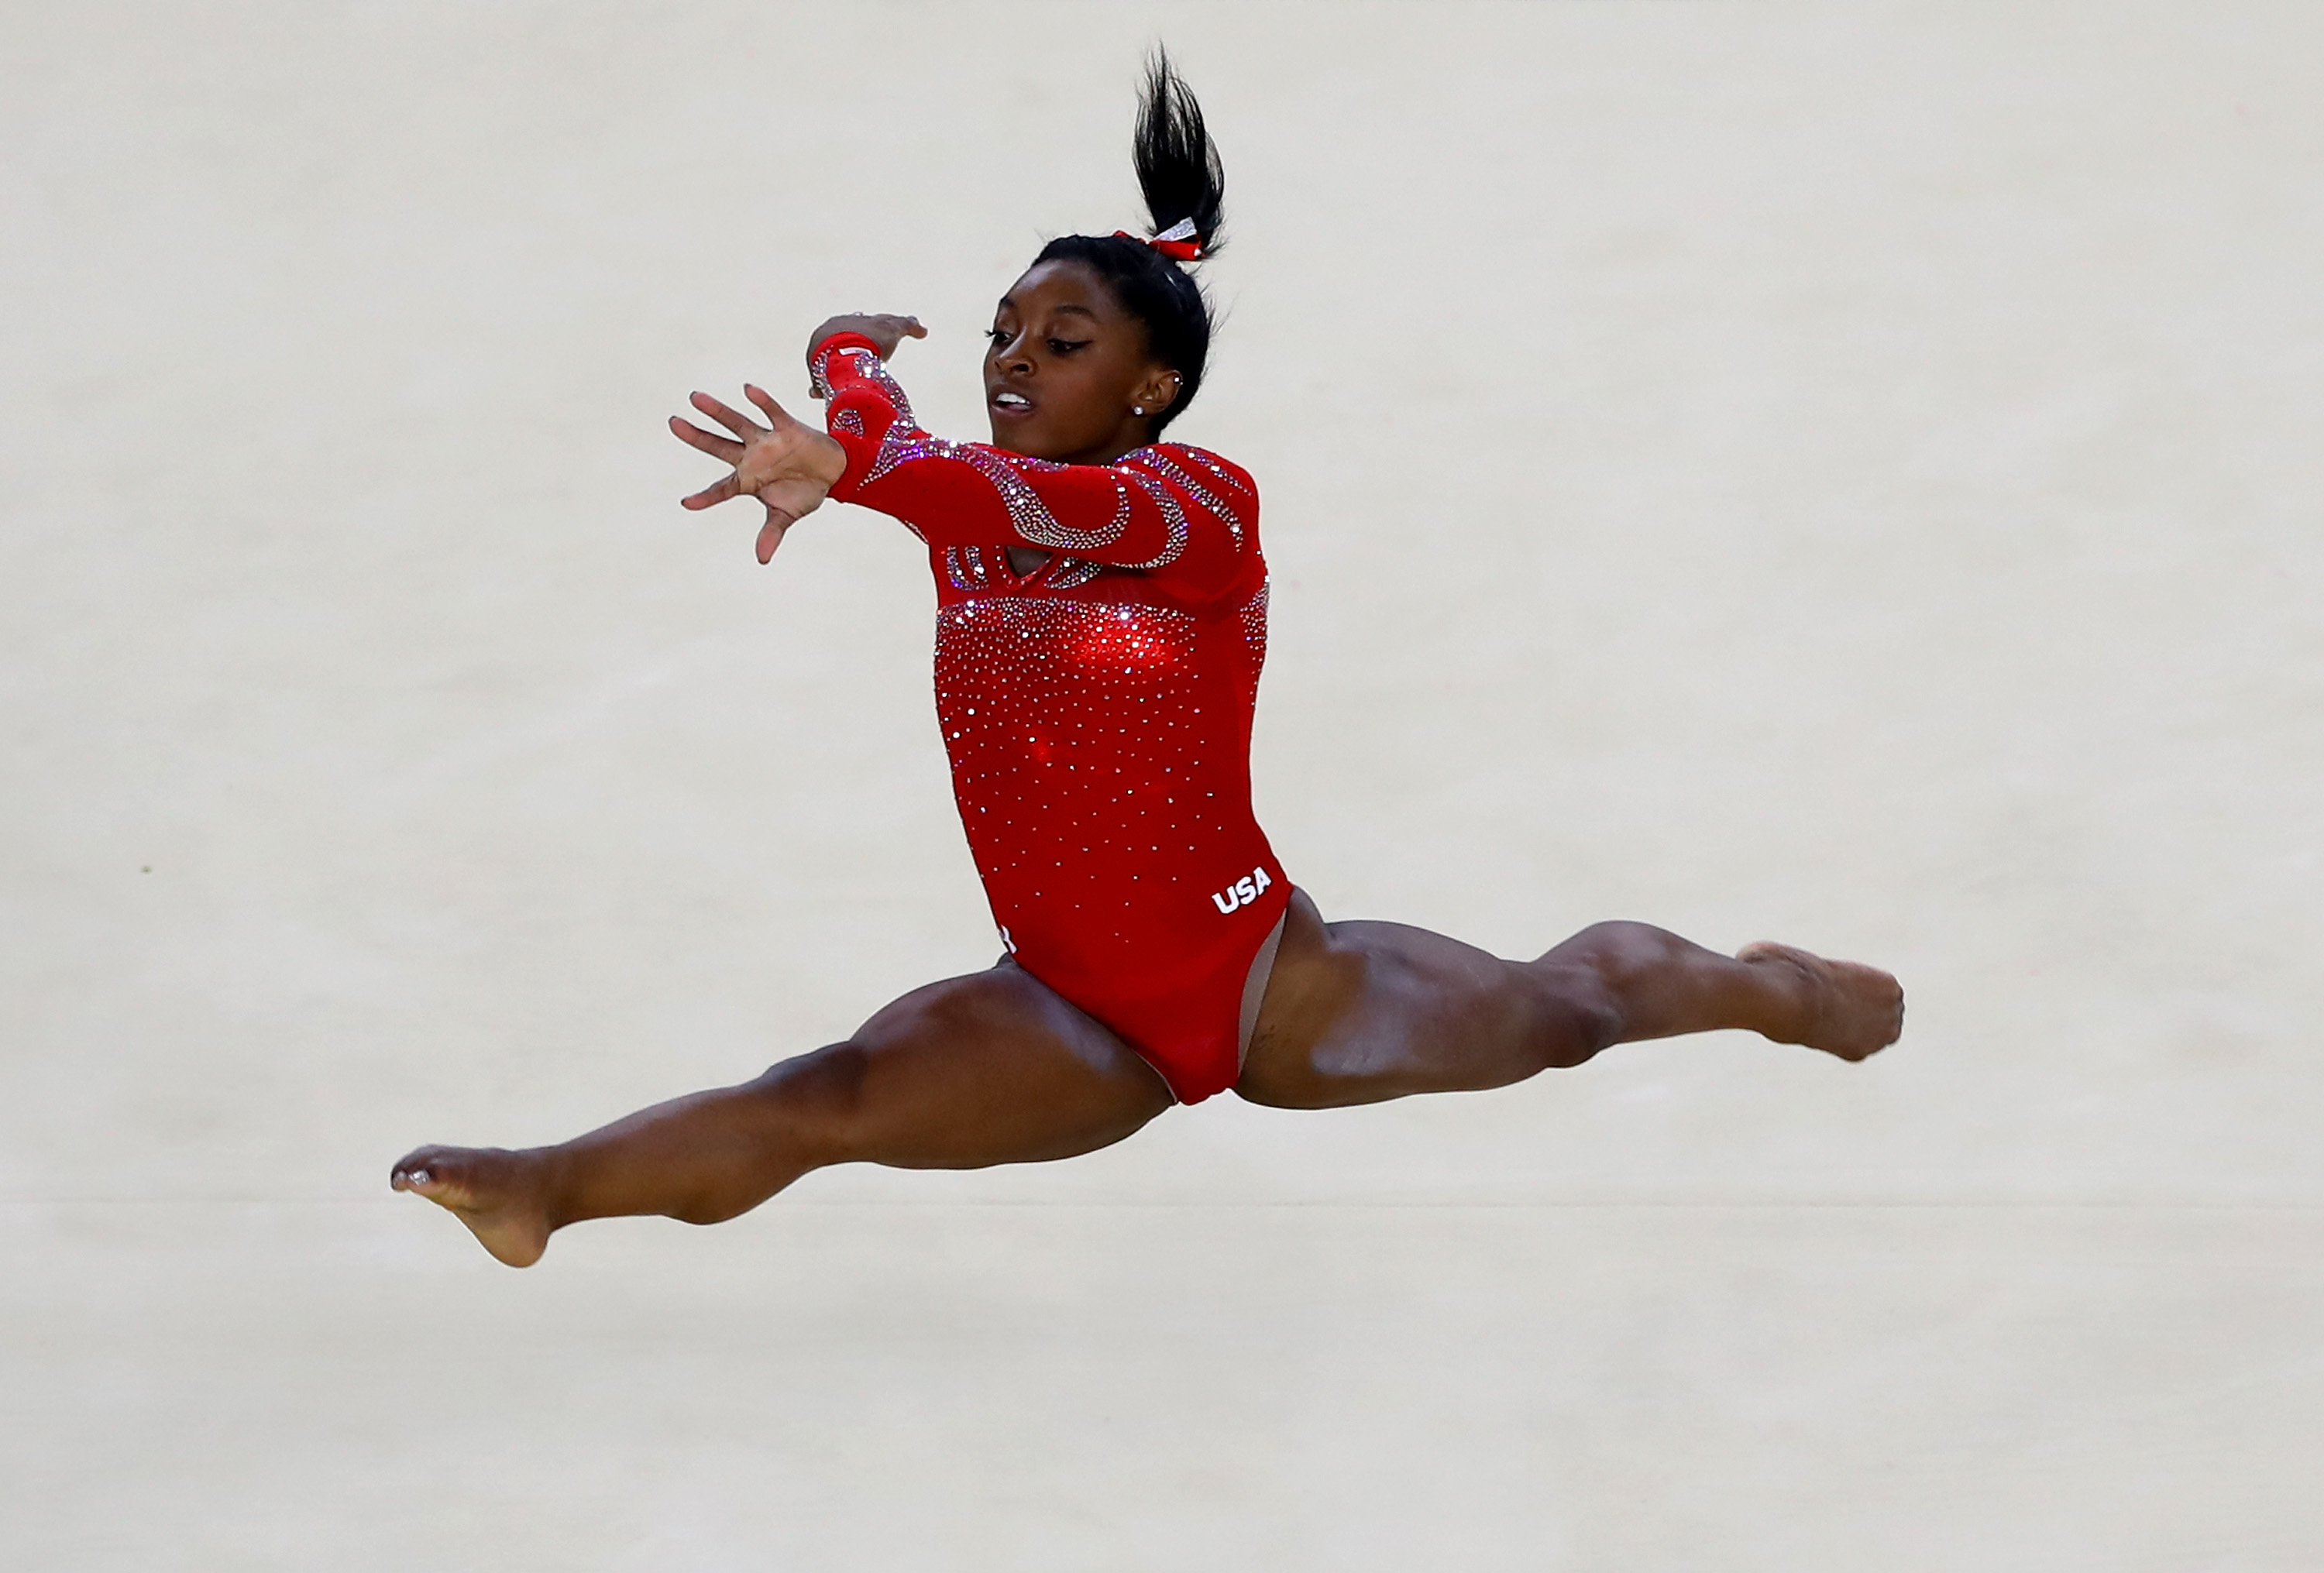 This video shows why Simone Biles might just be the best gymnast in history